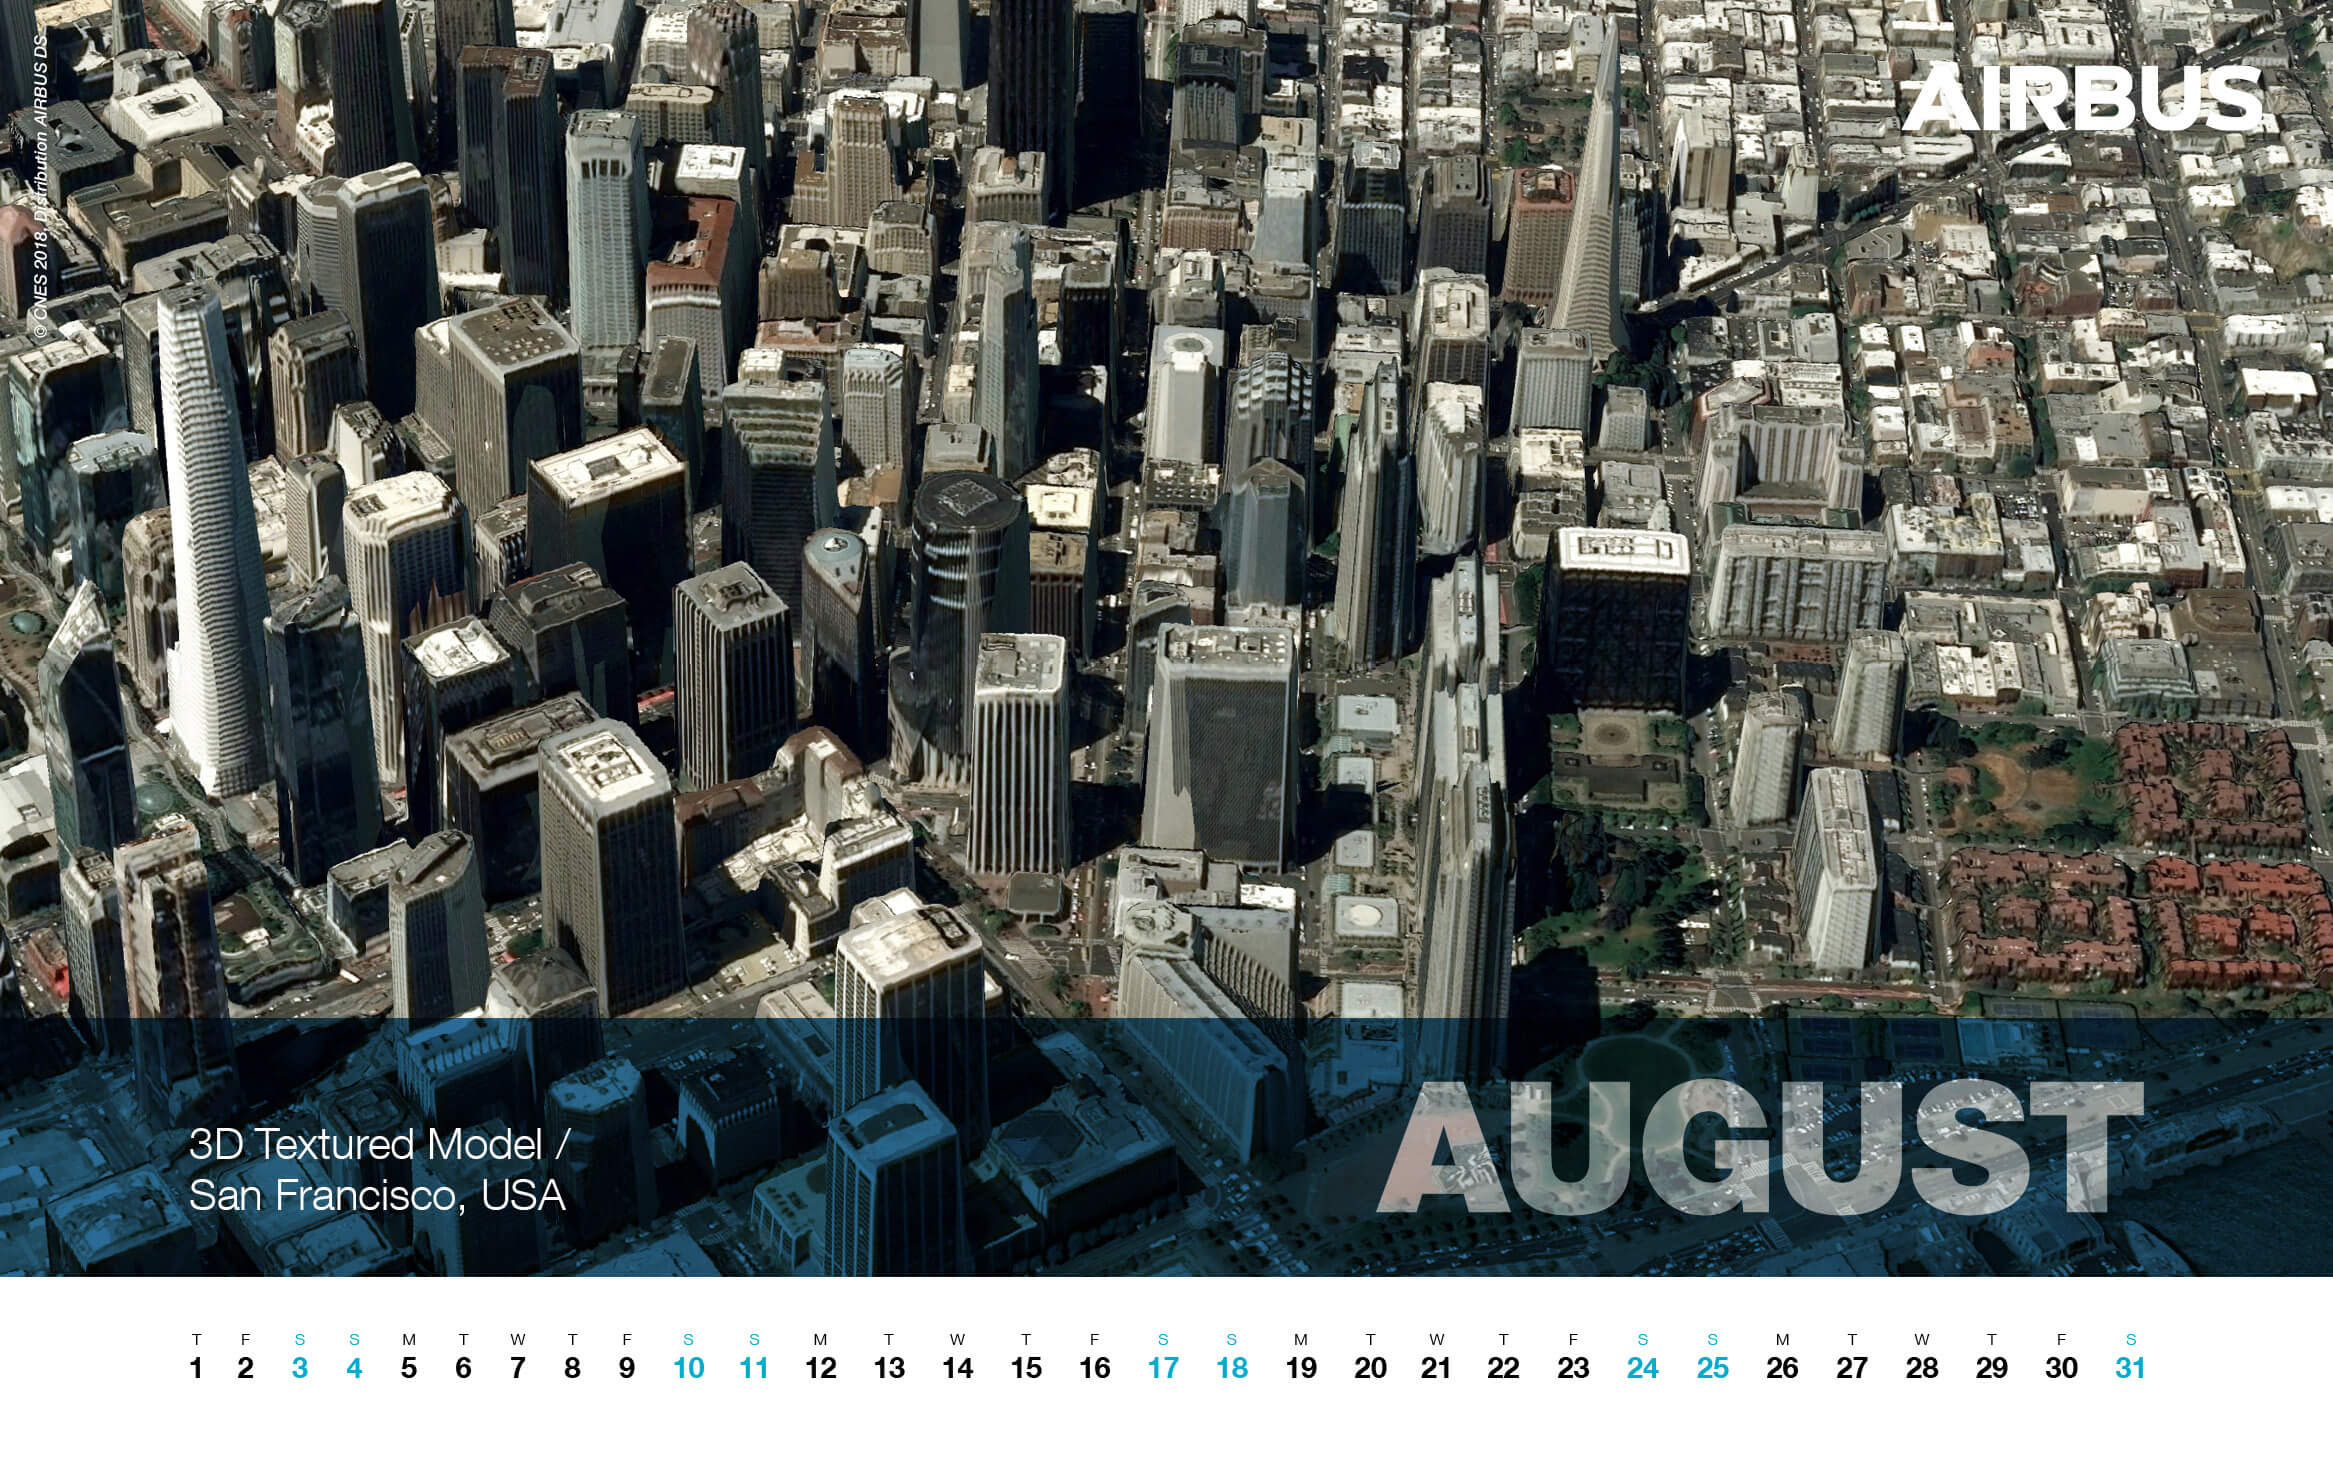 Calendar 2019 - August - San Francisco, USA - 3D Textured Mod - 1680x1050